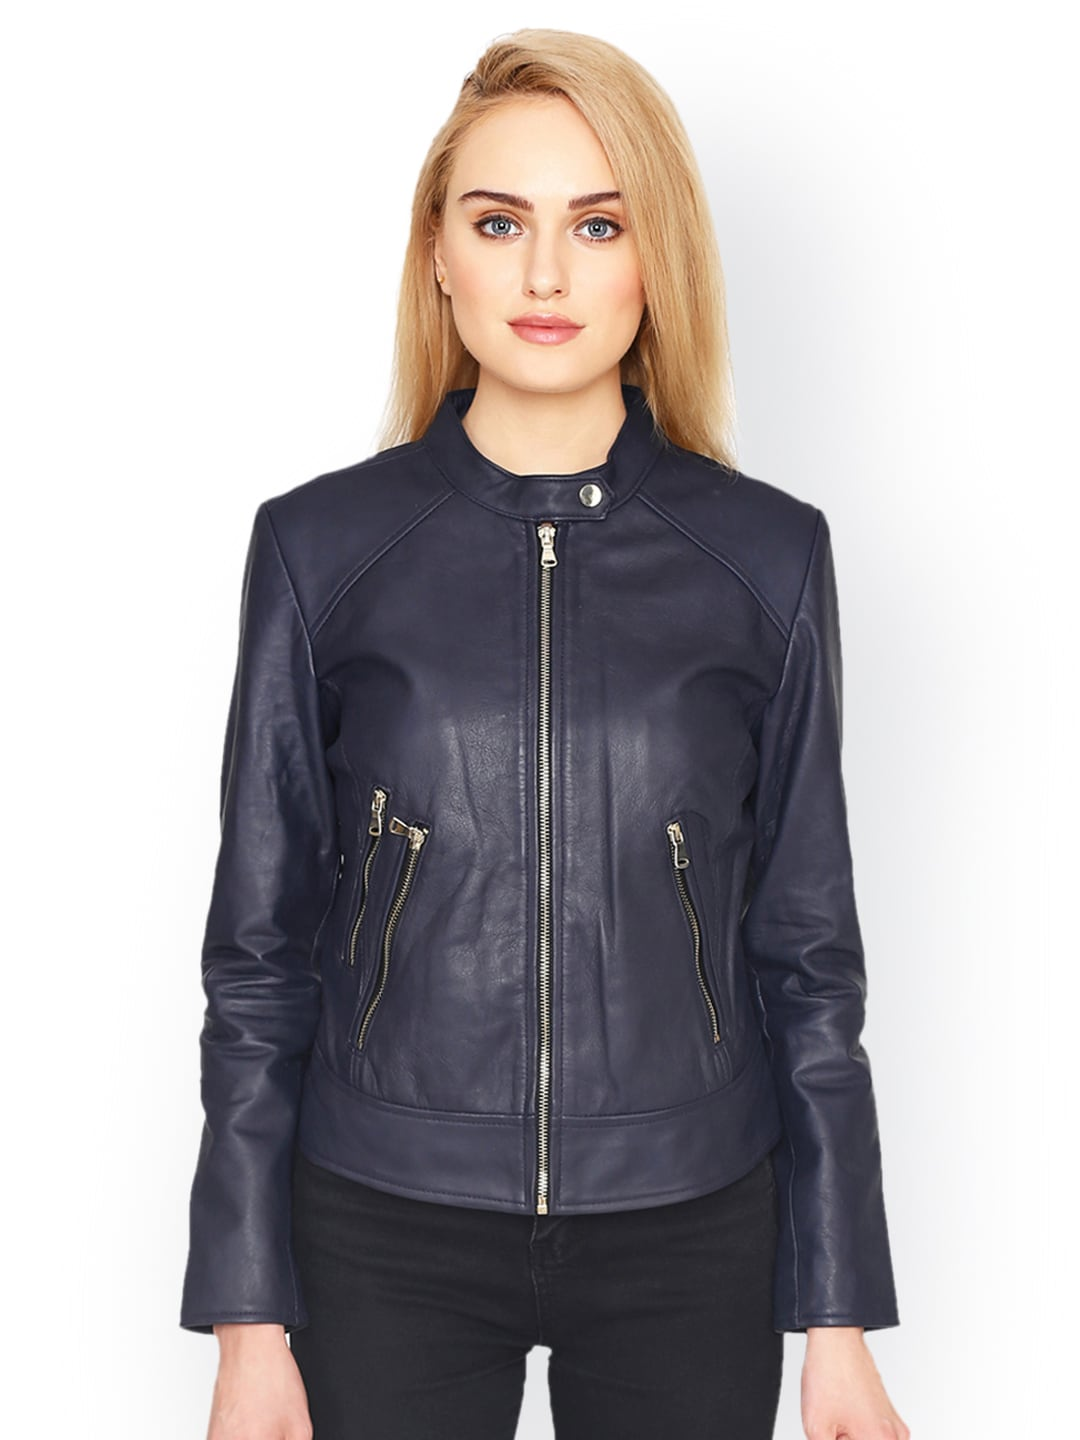 2f7df1b655a Blue Leather Jacket - Buy Blue Leather Jacket online in India